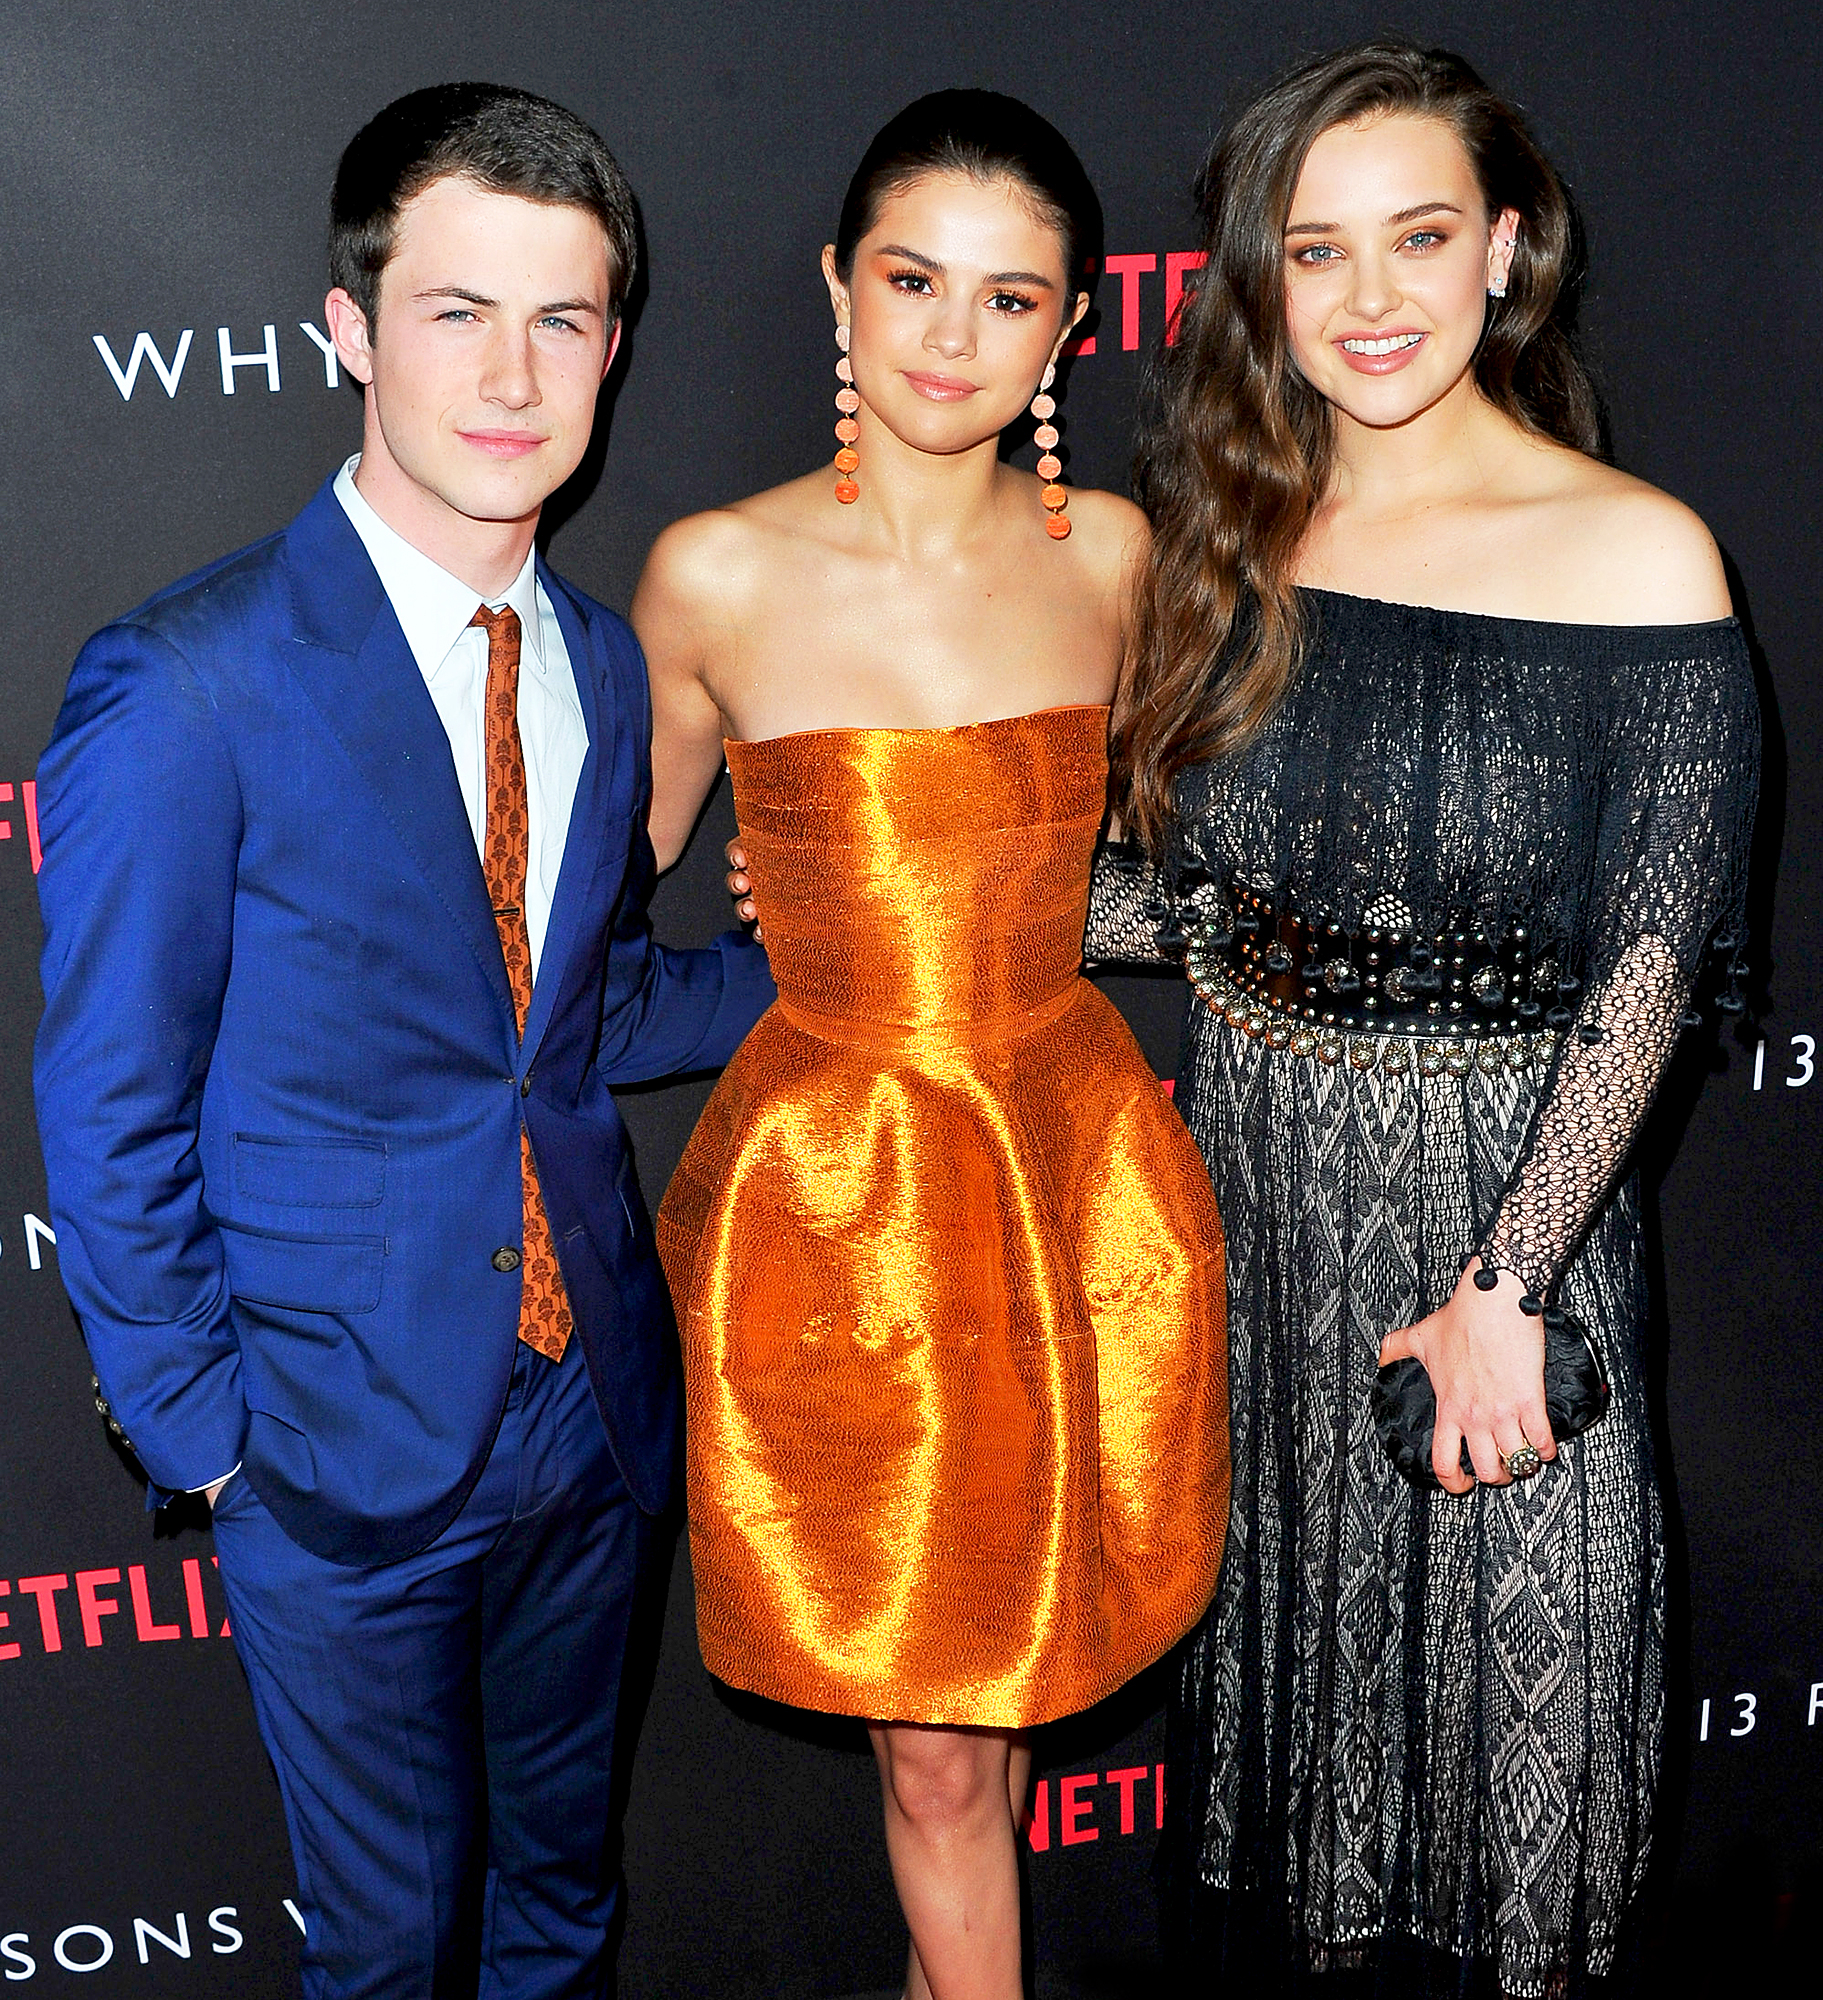 Dylan Minnette, Selena Gomez and Katherine Langford